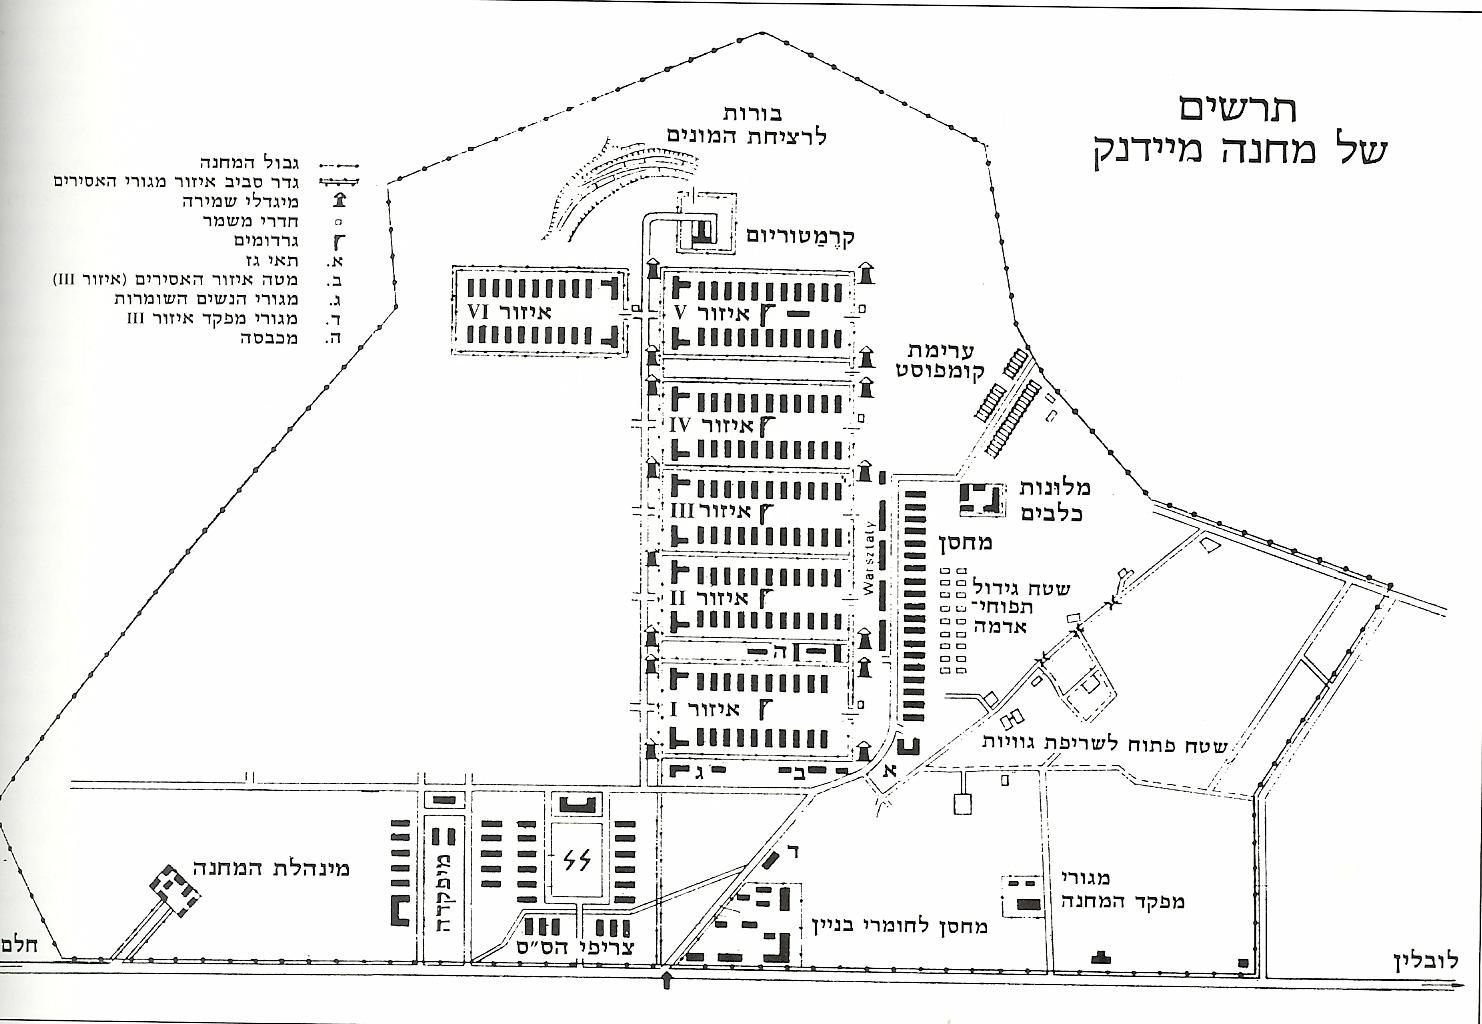 map of majdanek - Google Search | March of the Living | March of the Koldichevo Concentration Camp Map Of on treblinka concentration camp, arbeitsdorf concentration camp, the holocaust concentration camp, the arriving at concentration camp, black triangle concentration camp, bolzano concentration camp, janowska concentration camp, budzyn concentration camp, riga concentration camp,